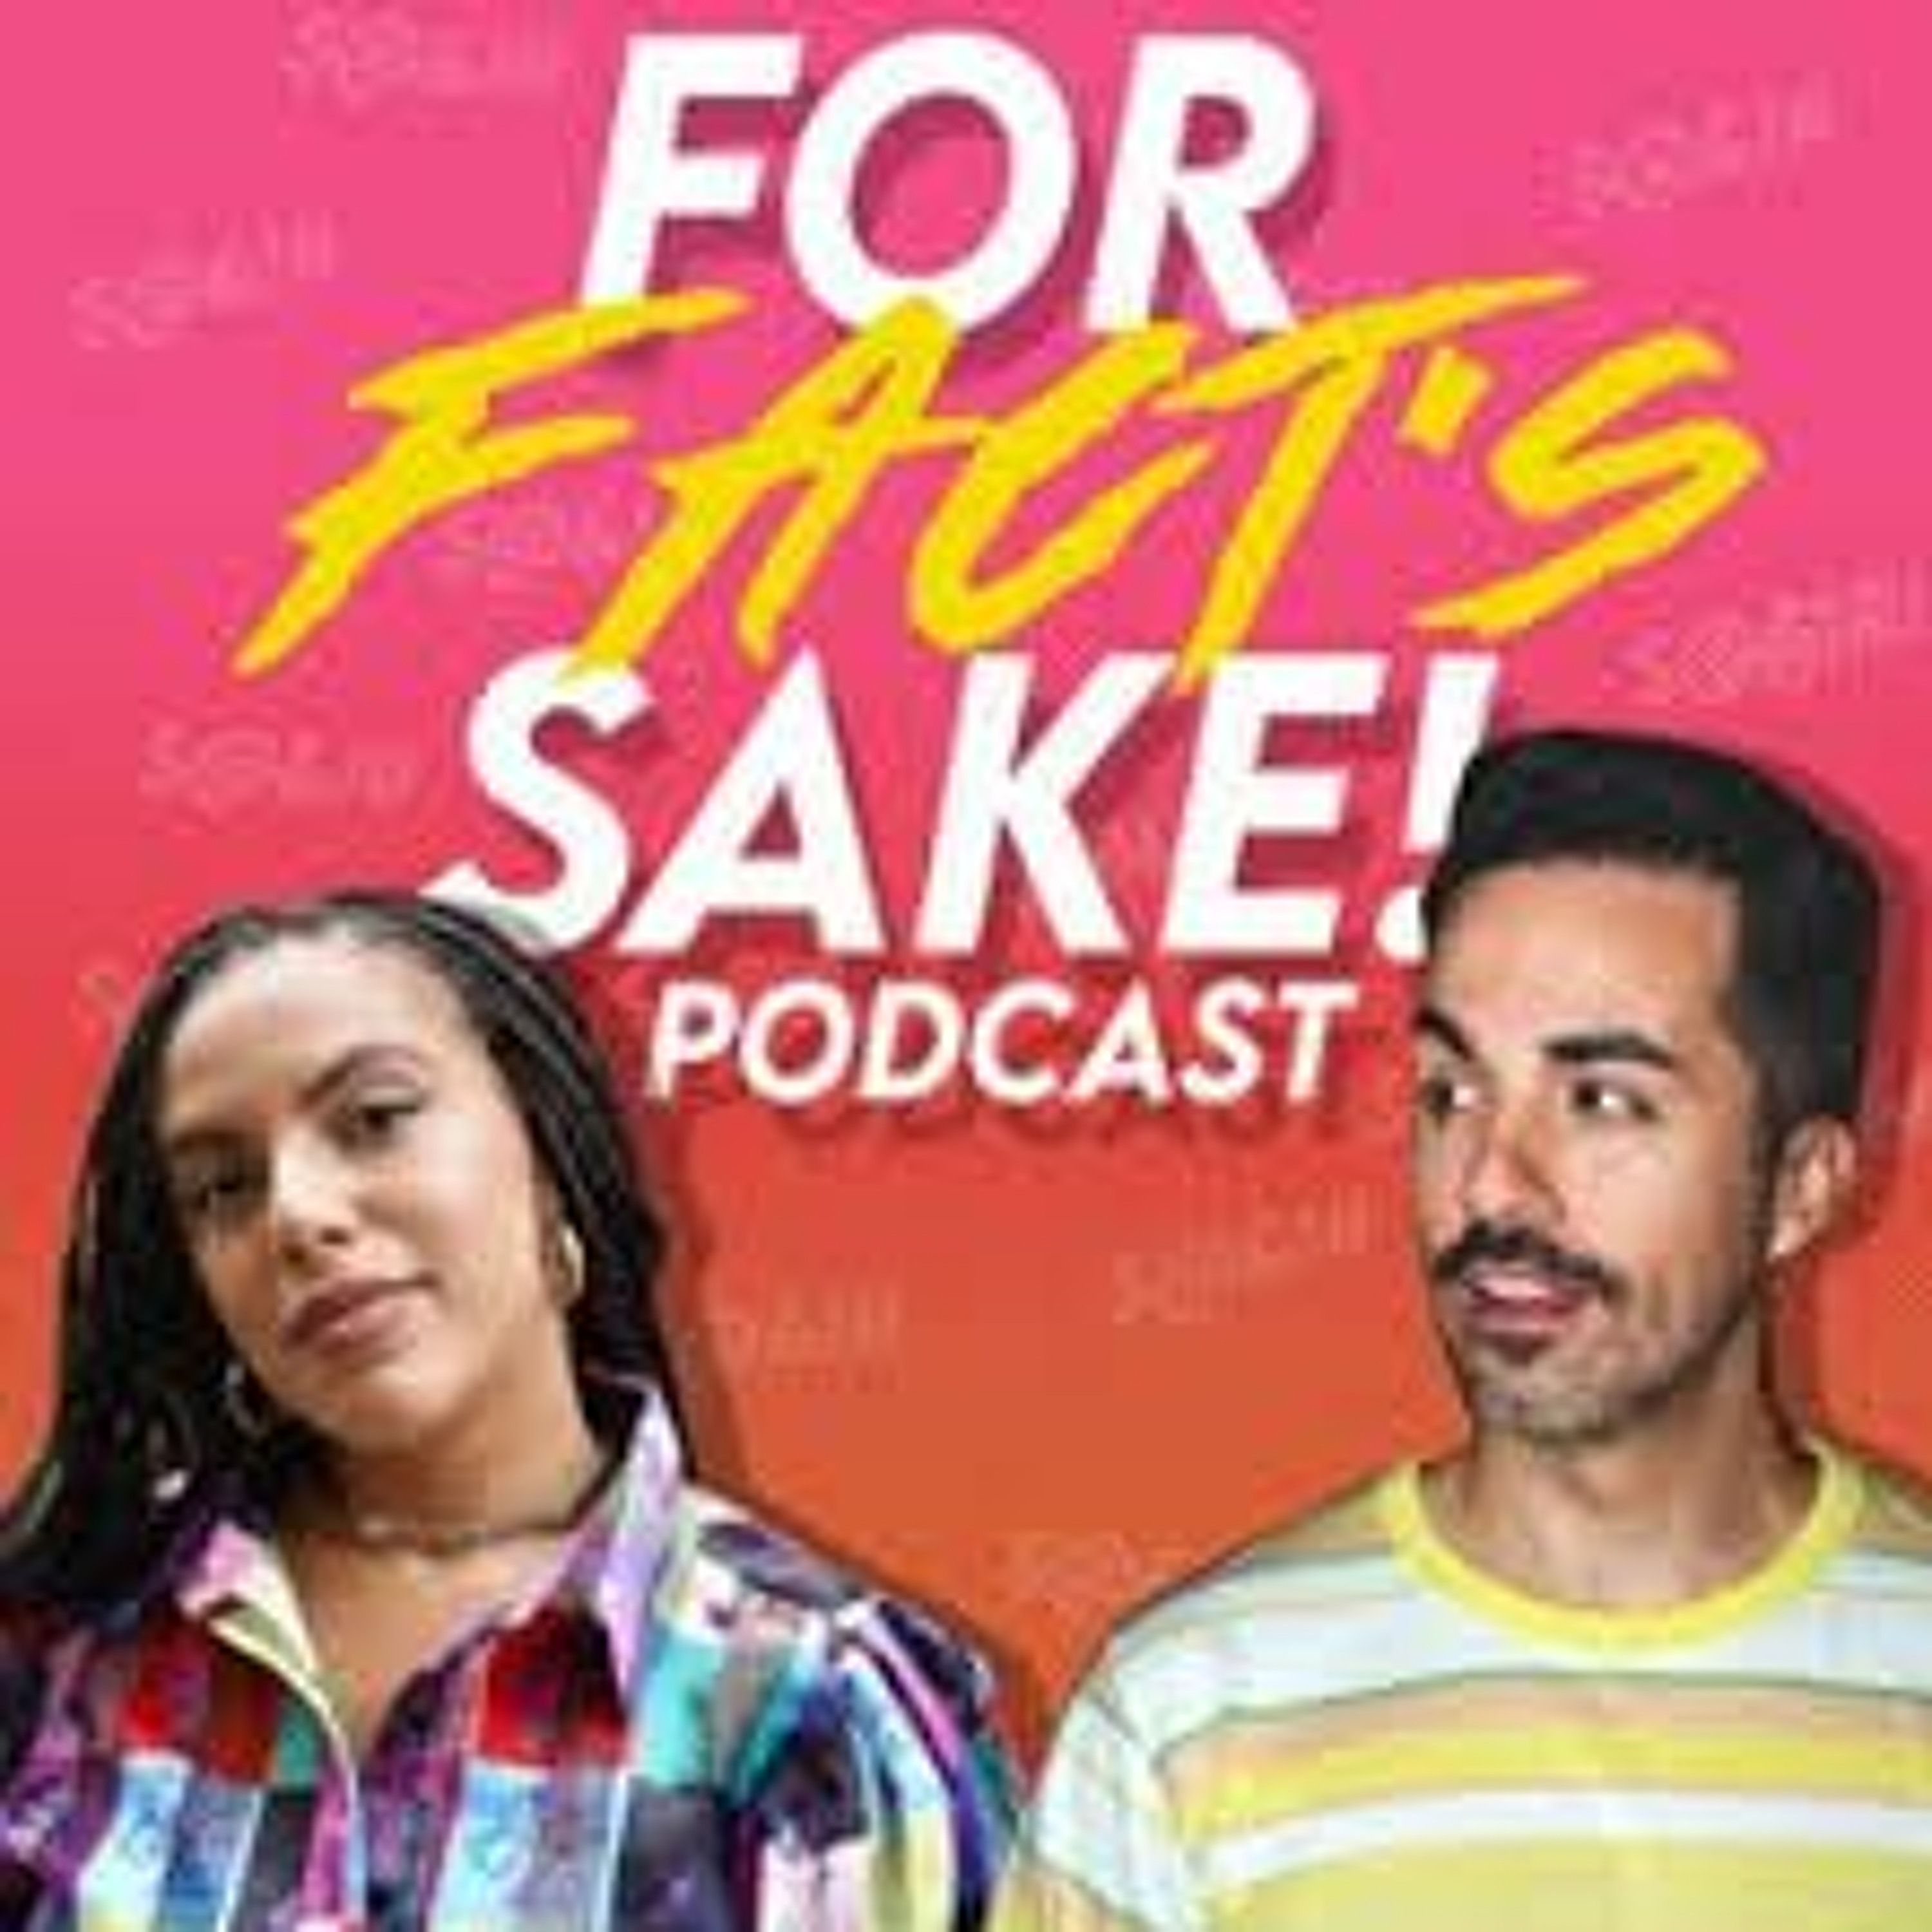 CULTS - FOR FACTS SAKE PODCAST.